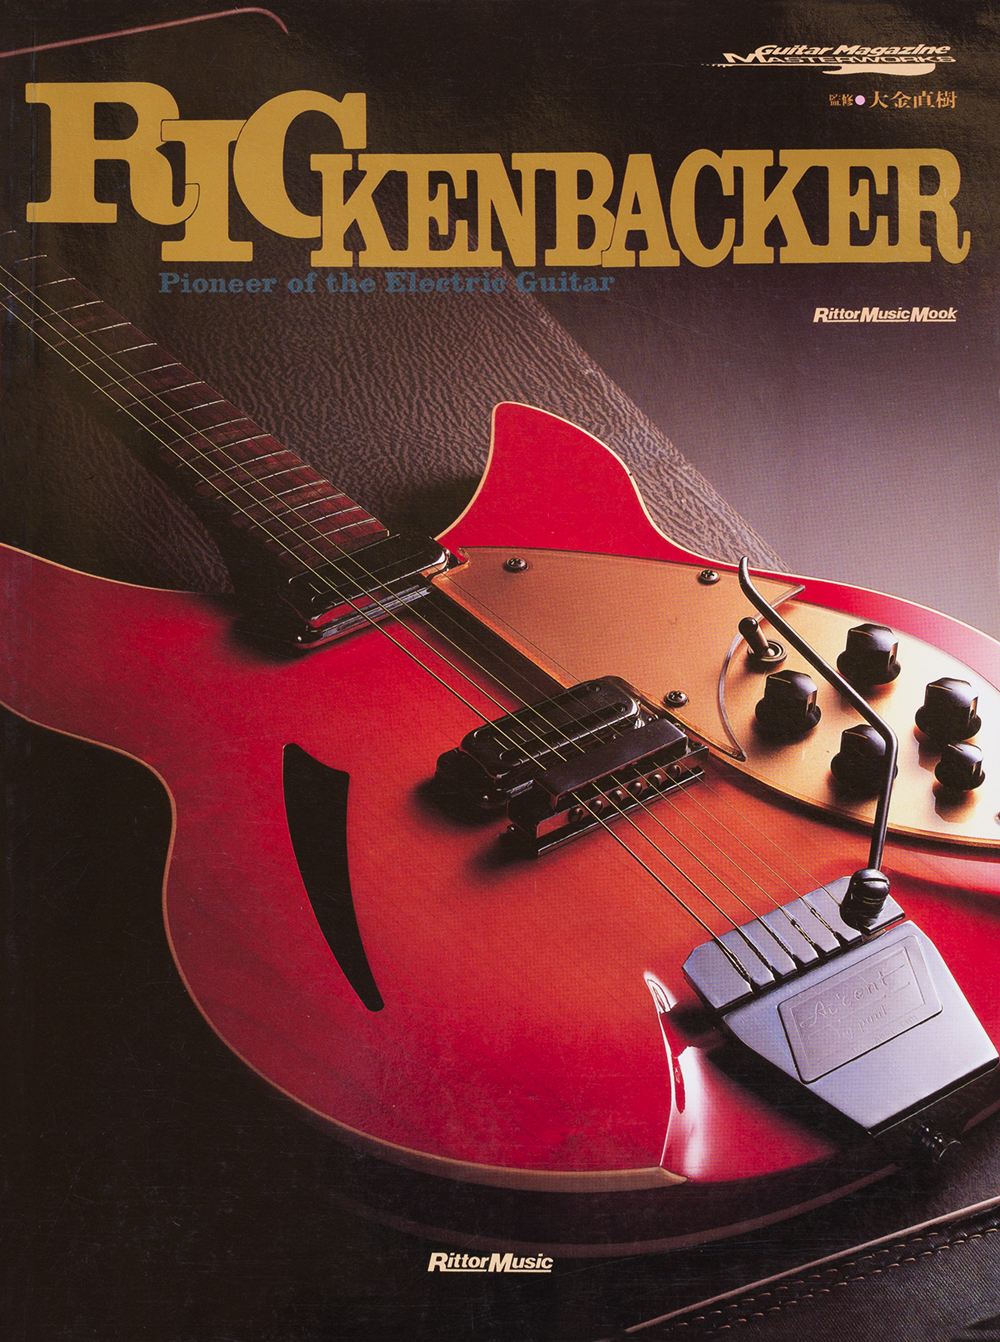 rickenbacker, pioneer of the electric guitar, by rittor music, japan